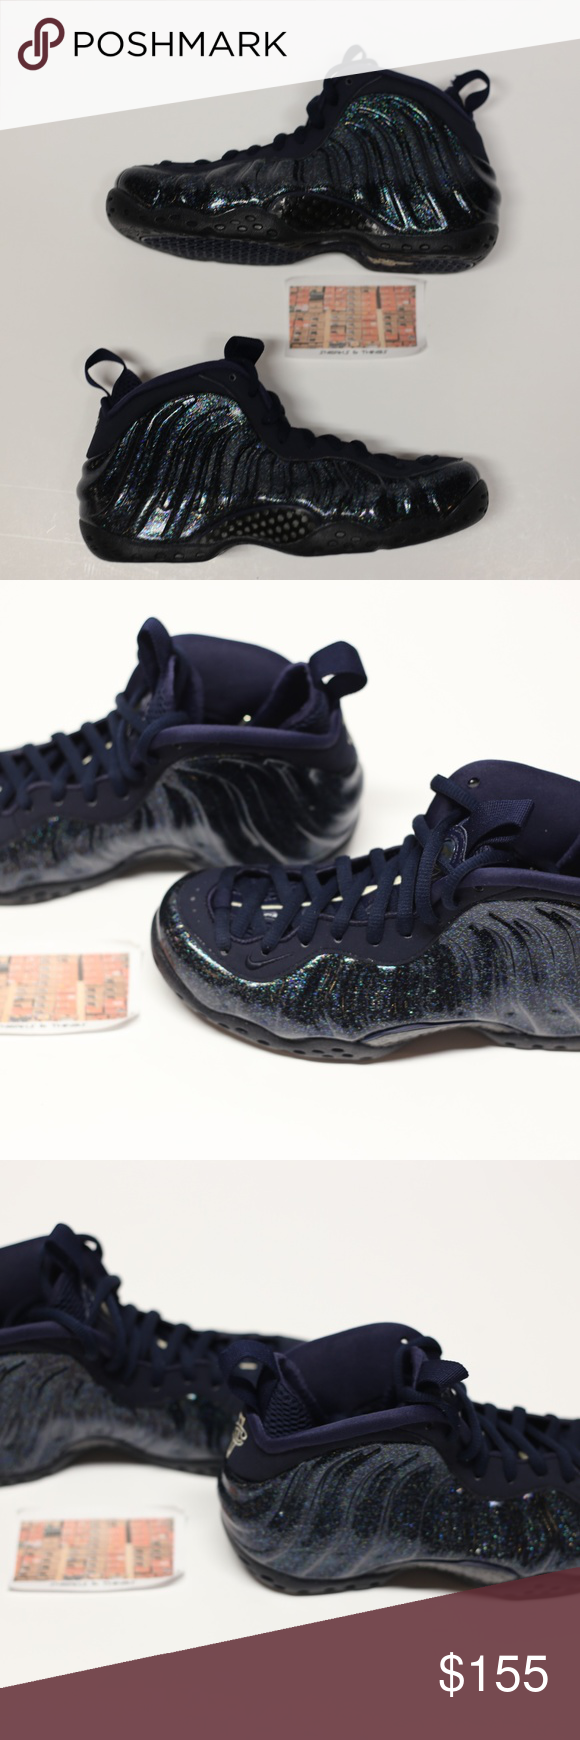 Nike Air Foamposite One NRG Galaxy All Star ... Sepsport